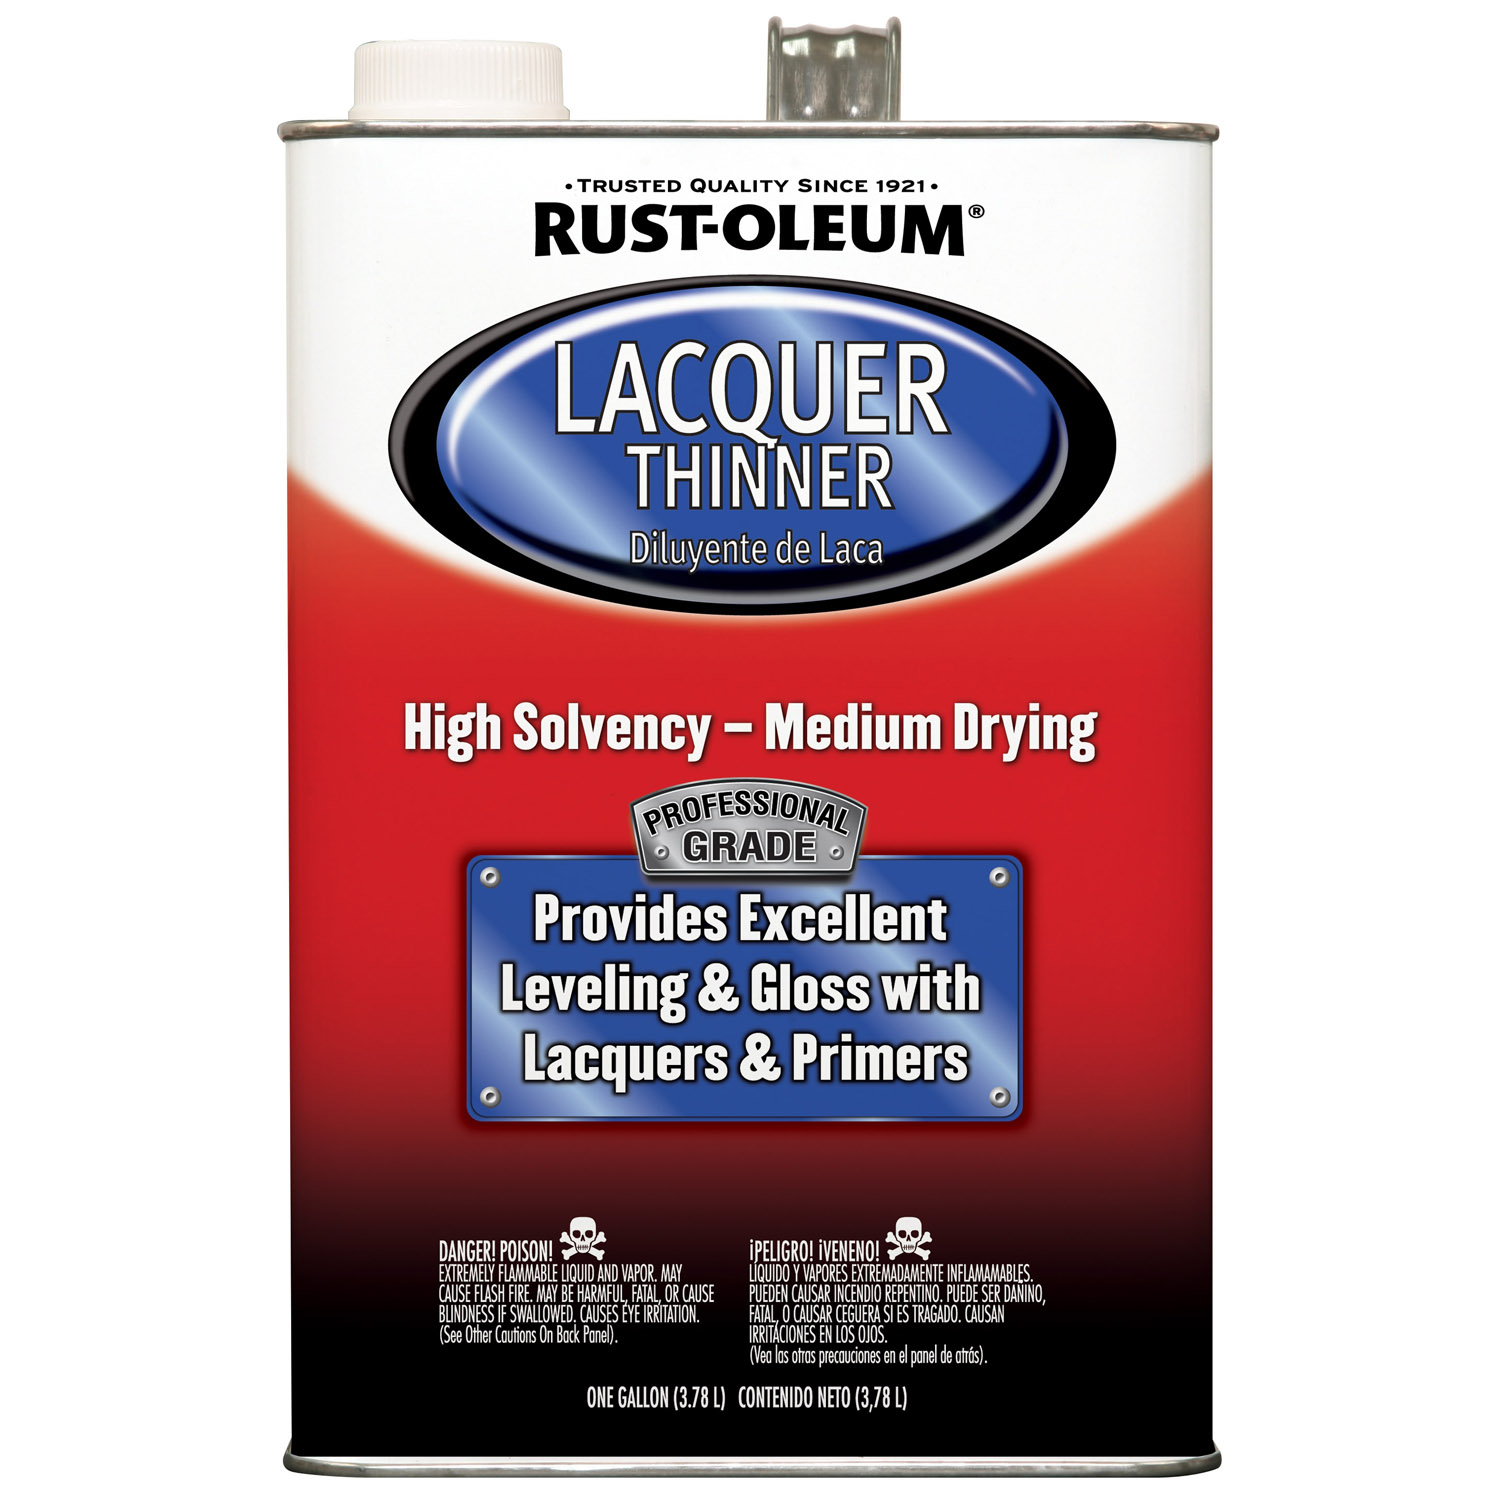 Rust-Oleum Professional Grade Lacquer Thinner, 1 Gallon